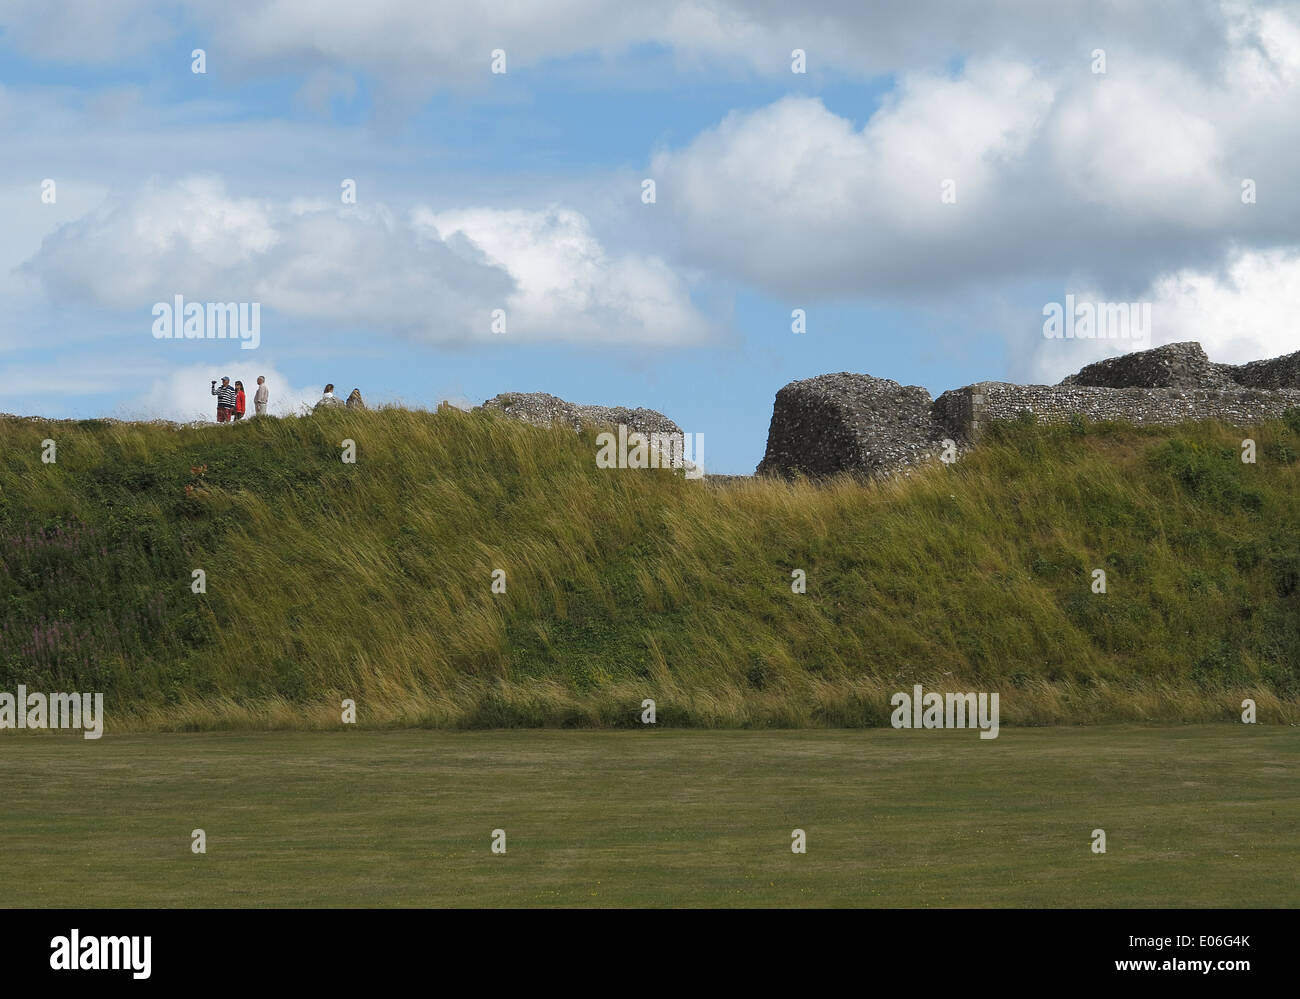 Old Sarum Wiltshire England UK a prehistoric site used by Romans, Saxons, and Normans. Stock Photo